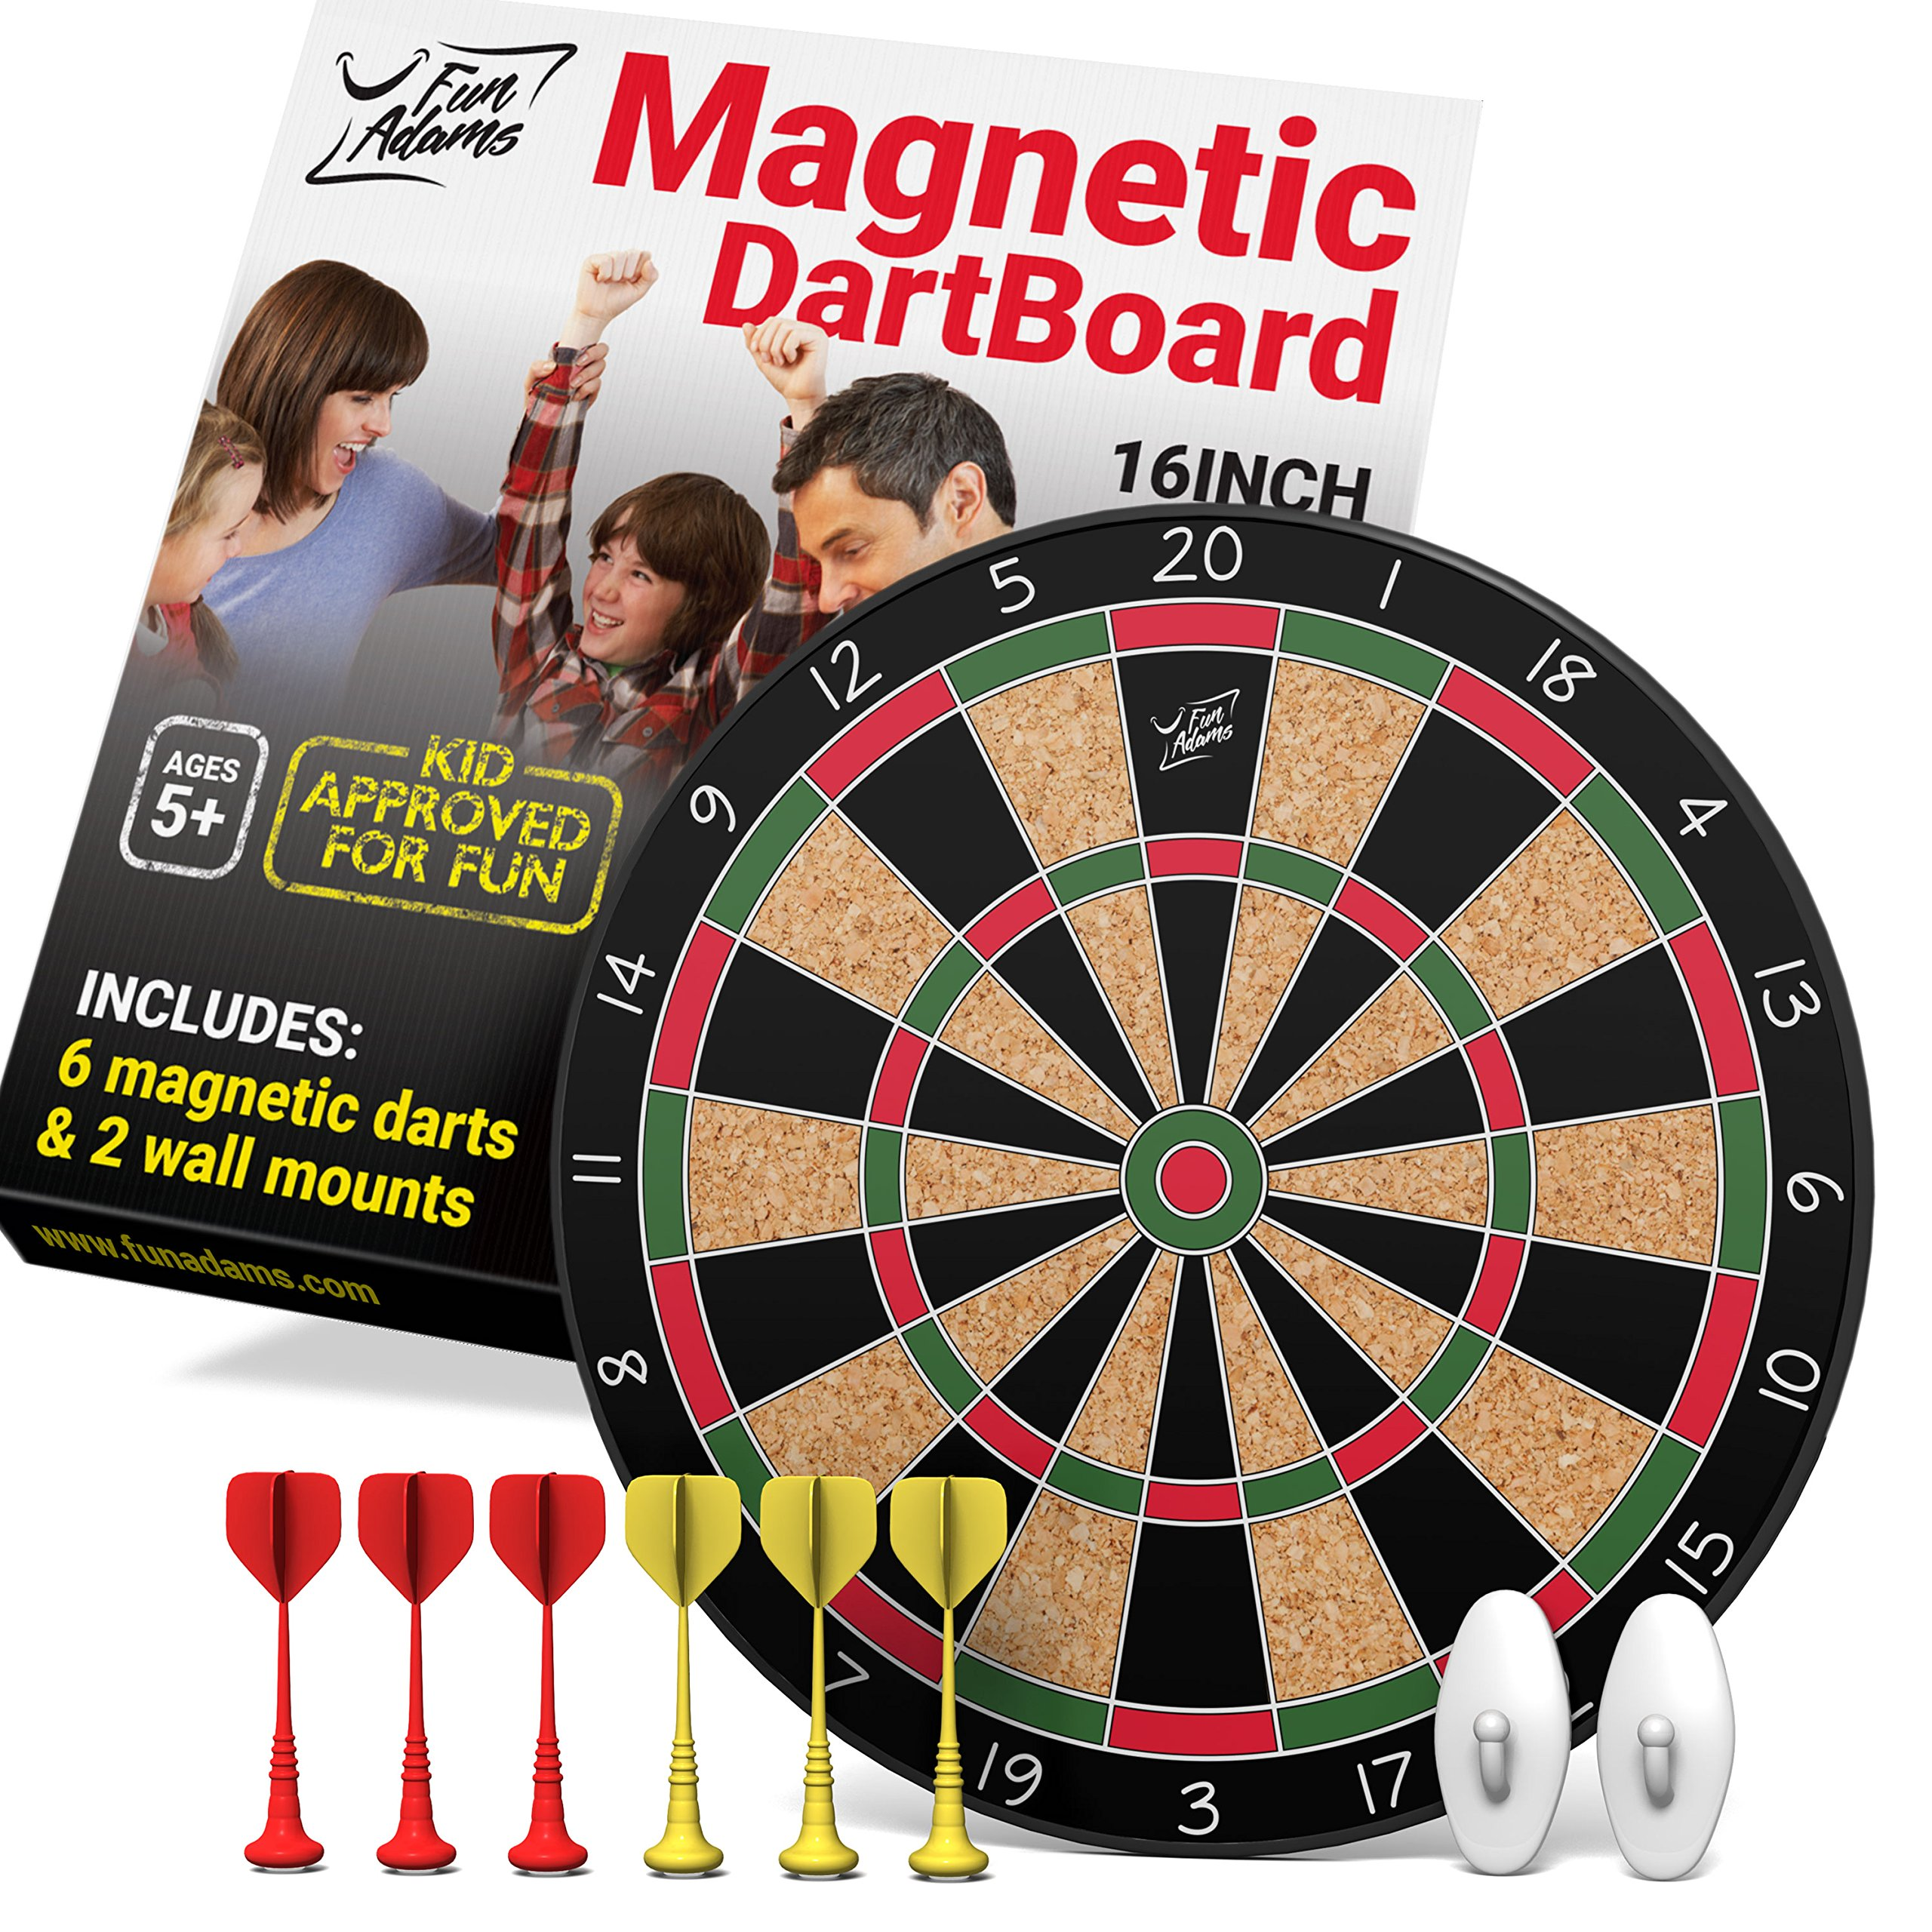 Fun Adams Magnetic Dartboard 16 inch with Safe Precision Darts, Best Gift for Boys & Girls, Great Classic Game the Whole Family can Enjoy - Play in Teams or Solo, Simple & Easy to Install by Fun Adams (Image #1)